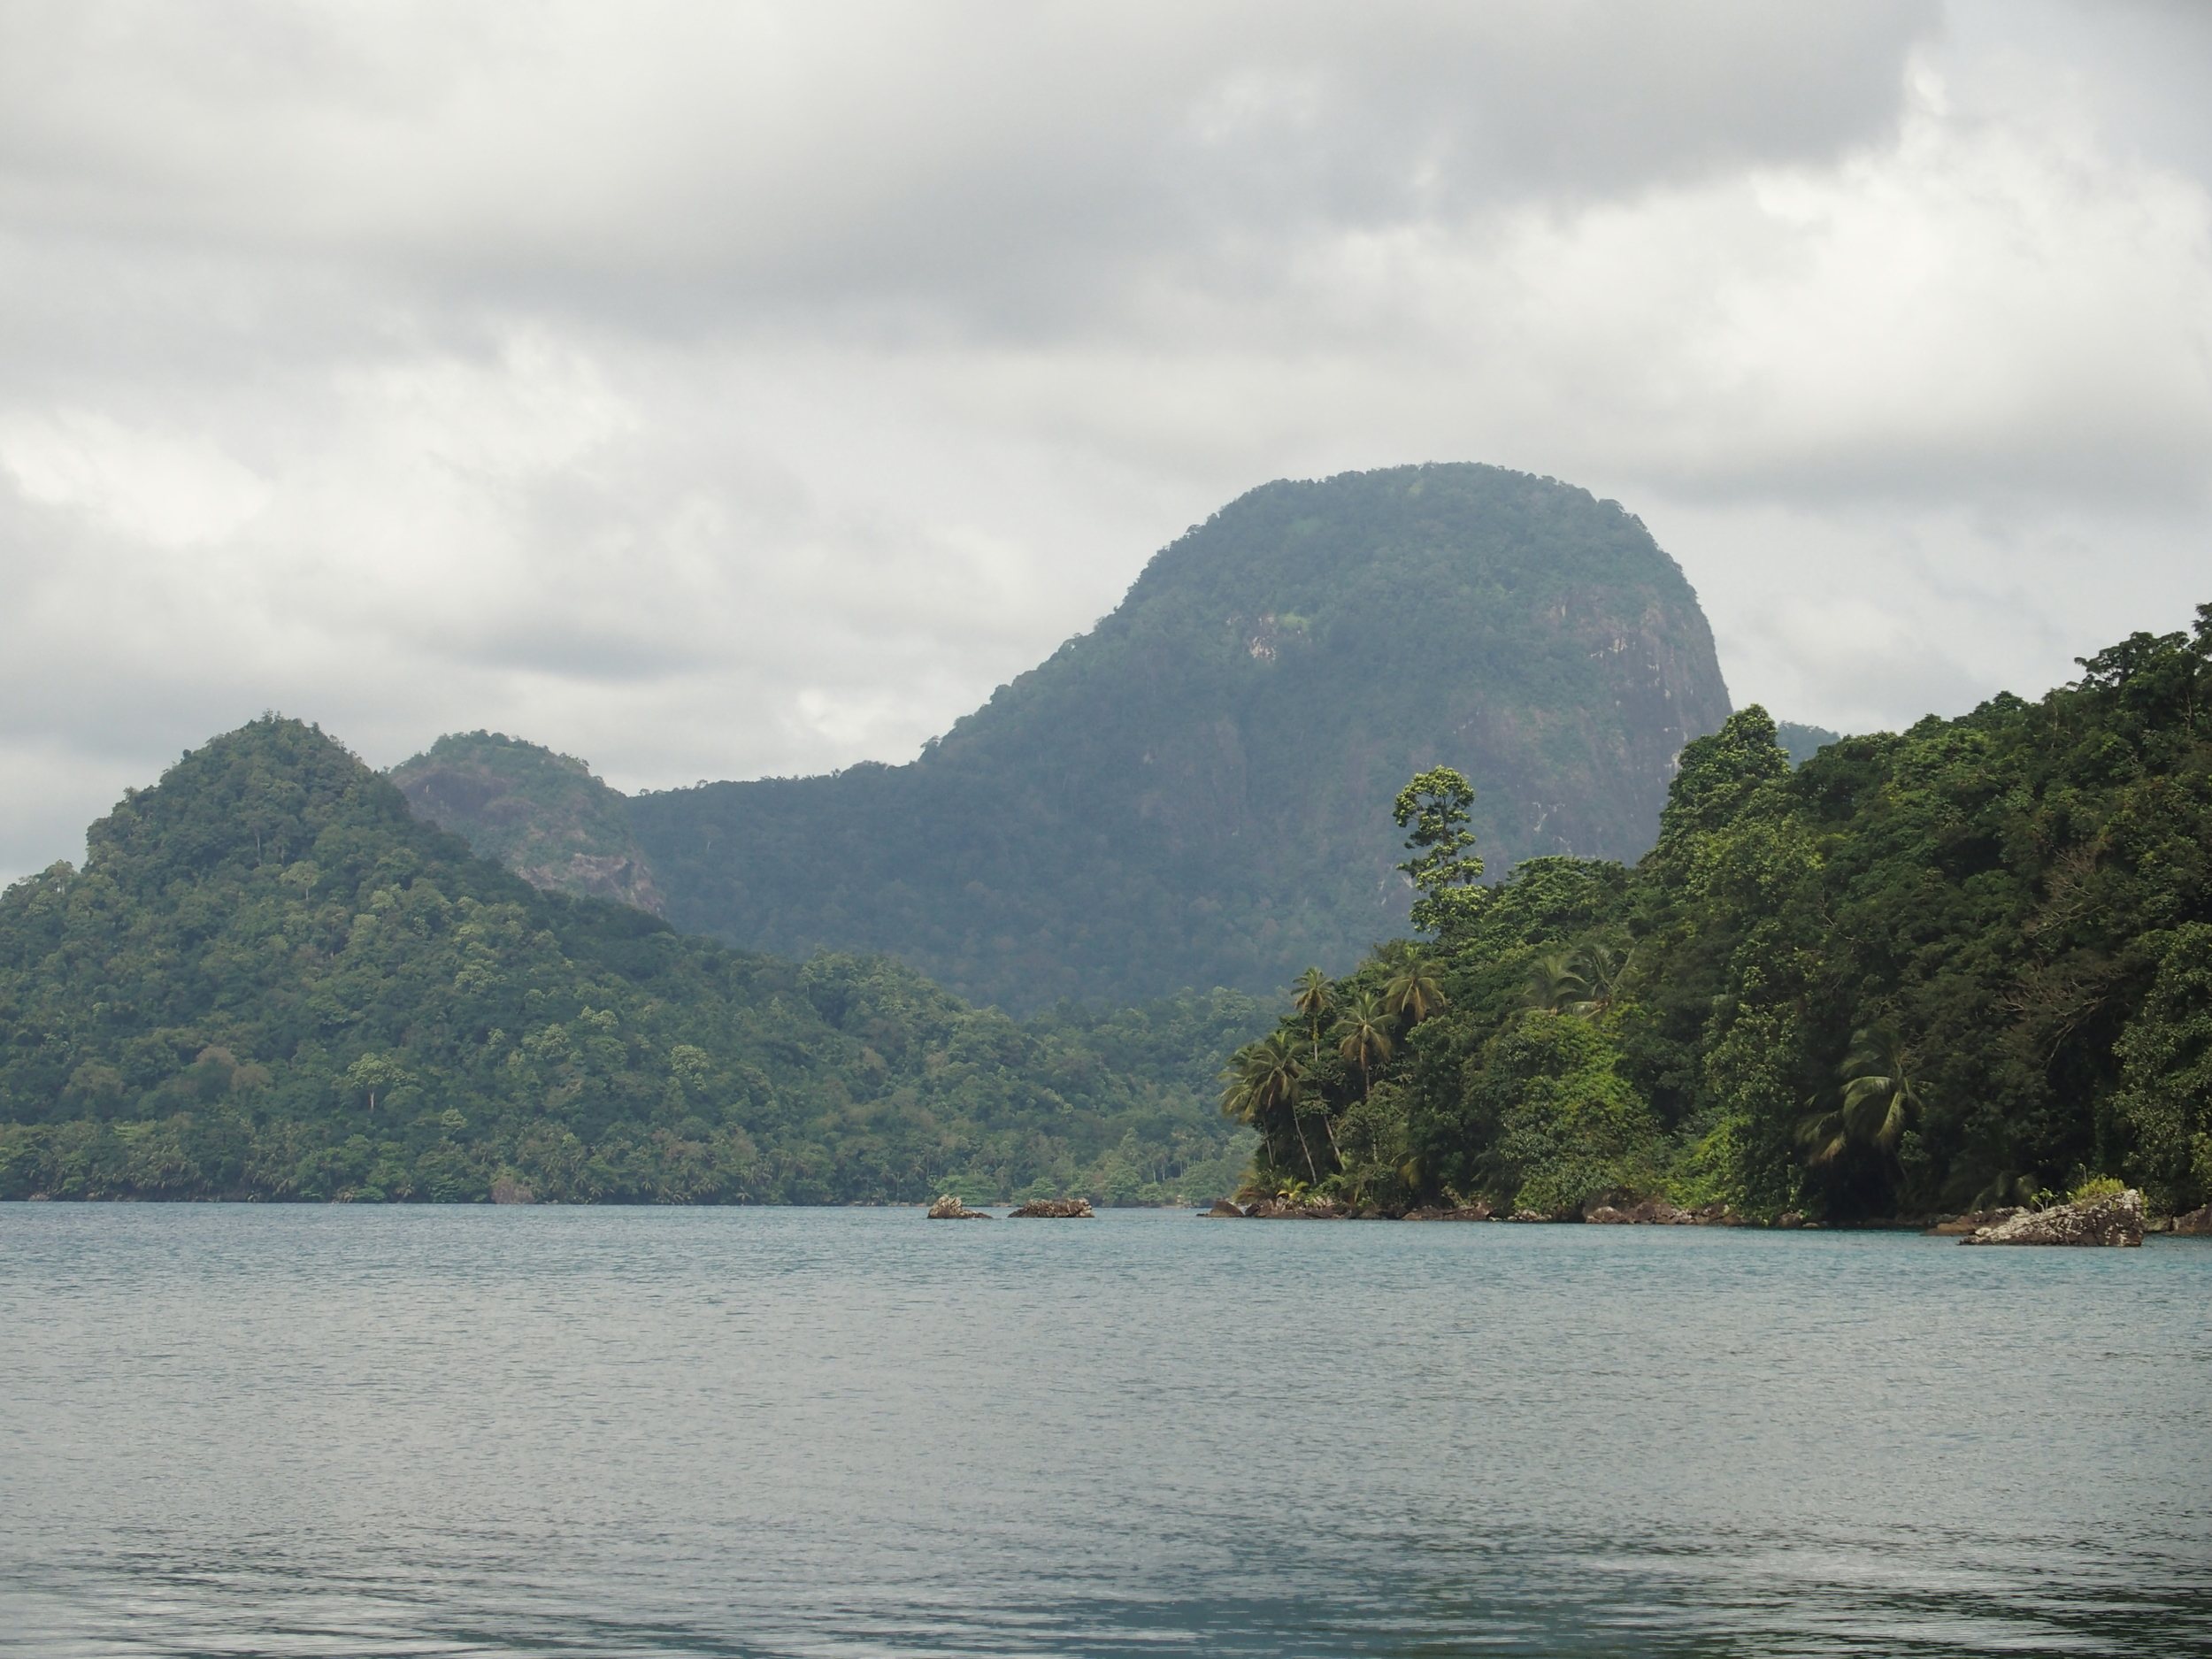 Coastal and nearshore waters of the Island of Príncipe in São Tomé and Príncipe. Photo: Kristian Metcalfe